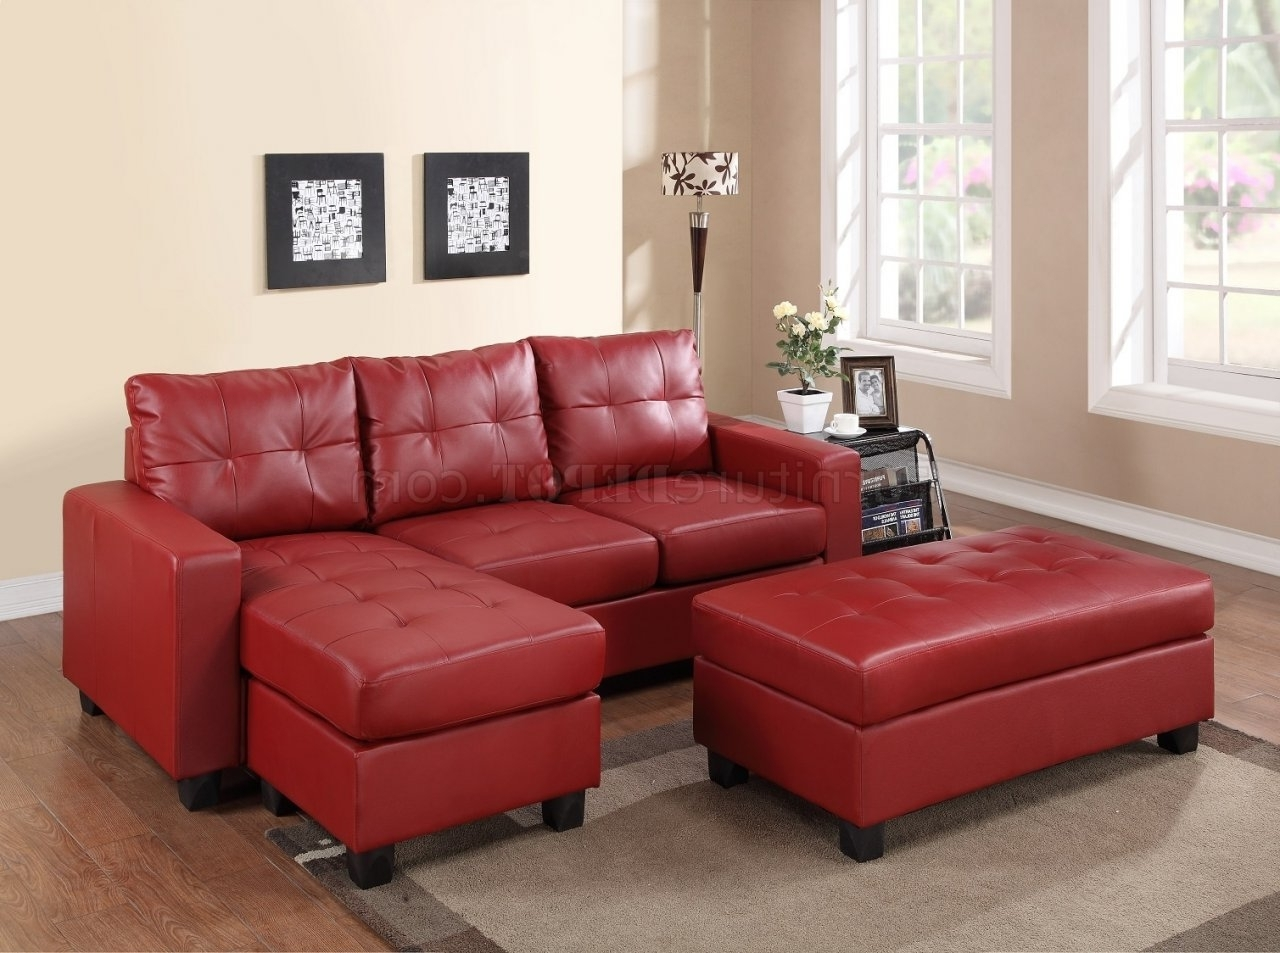 2511 Sectional Sofa Set In Red Bonded Leather Match Pu Pertaining To Widely Used Red Leather Sectional Couches (View 11 of 15)